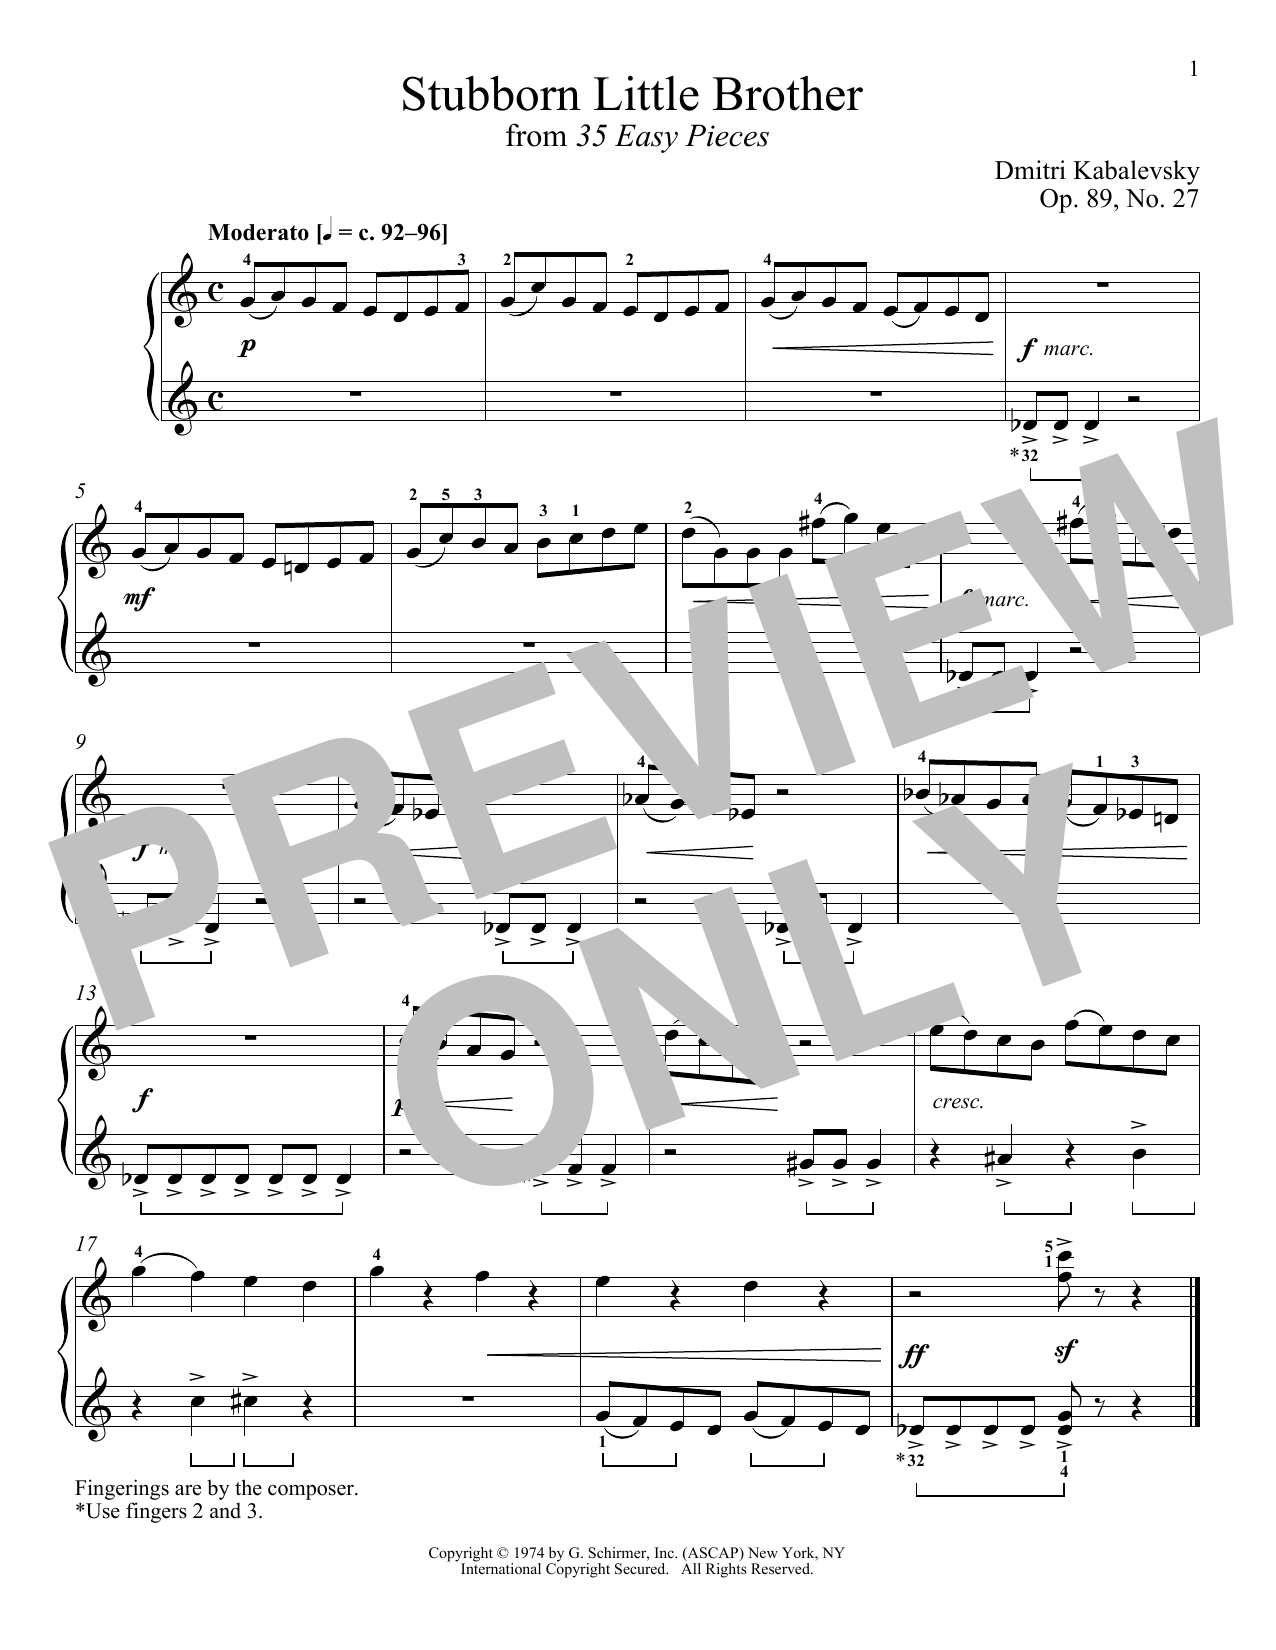 Dmitri Kabalevsky Stubborn Little Brother, Op. 89, No. 27 sheet music notes and chords. Download Printable PDF.